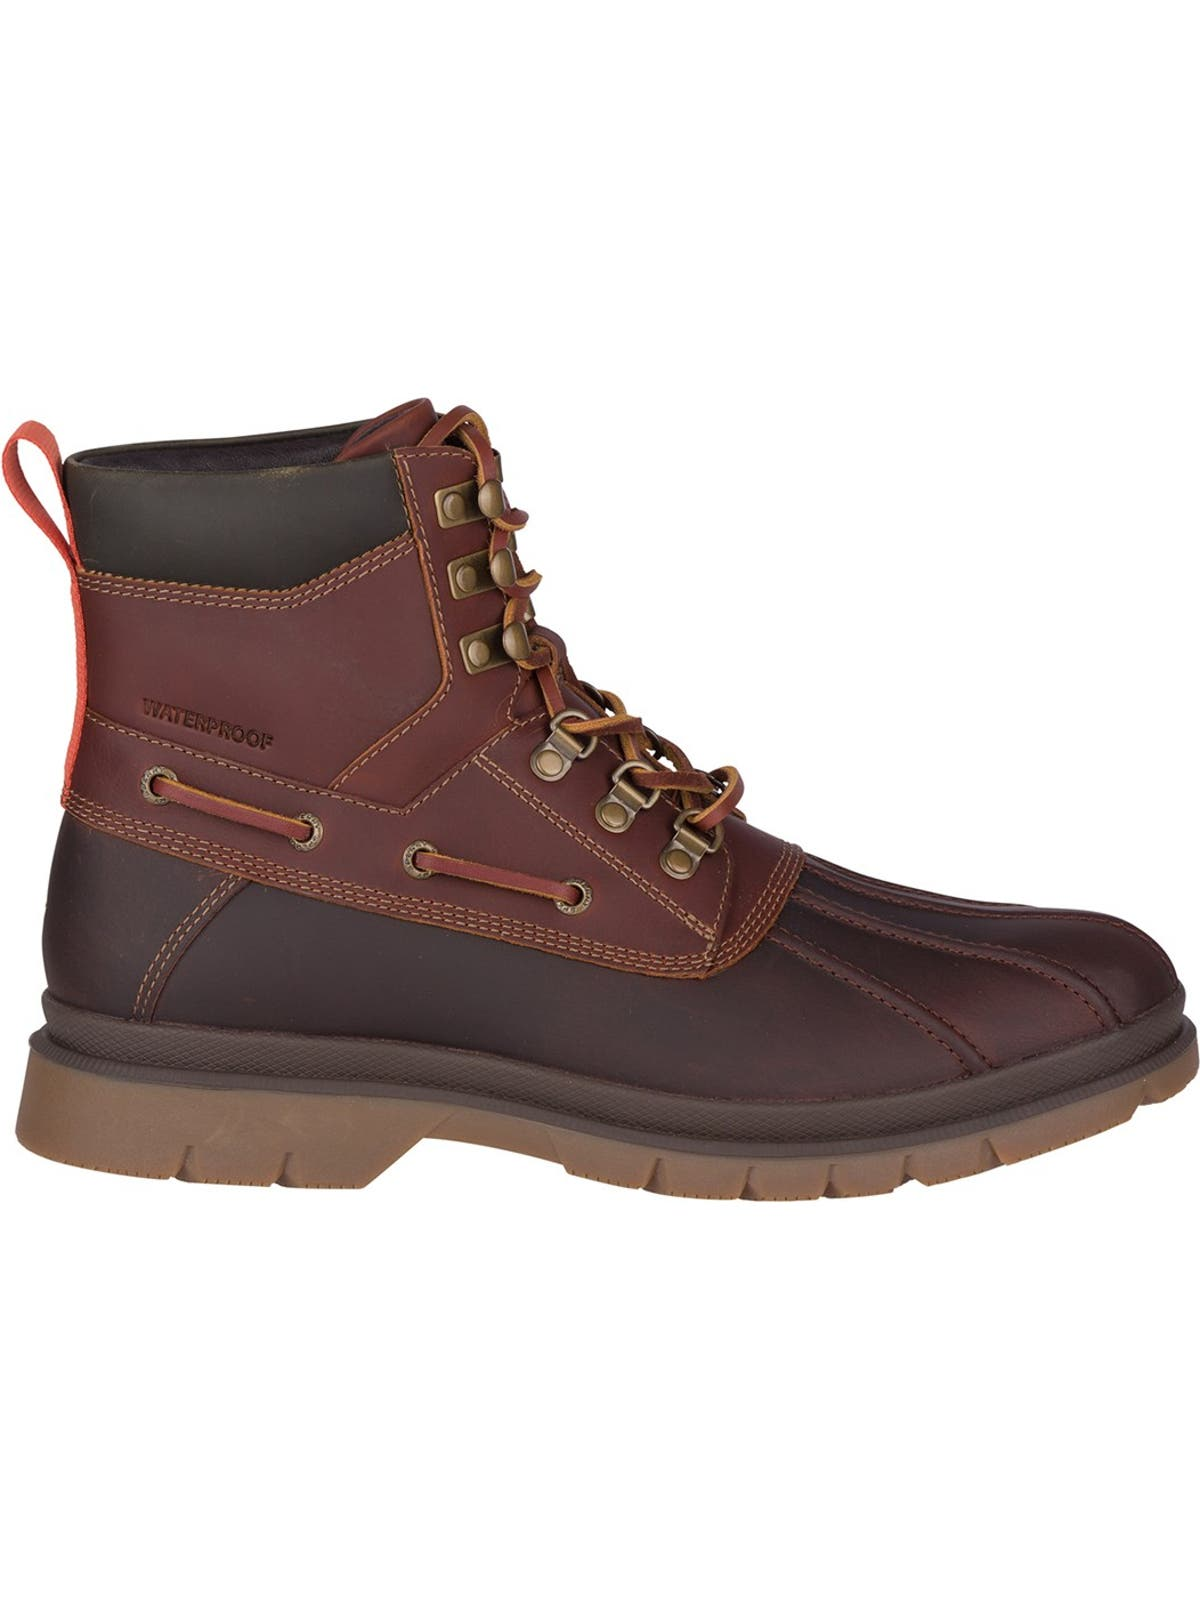 Sperry Watertown Waterproof Leather Lace-Up Men's Boot